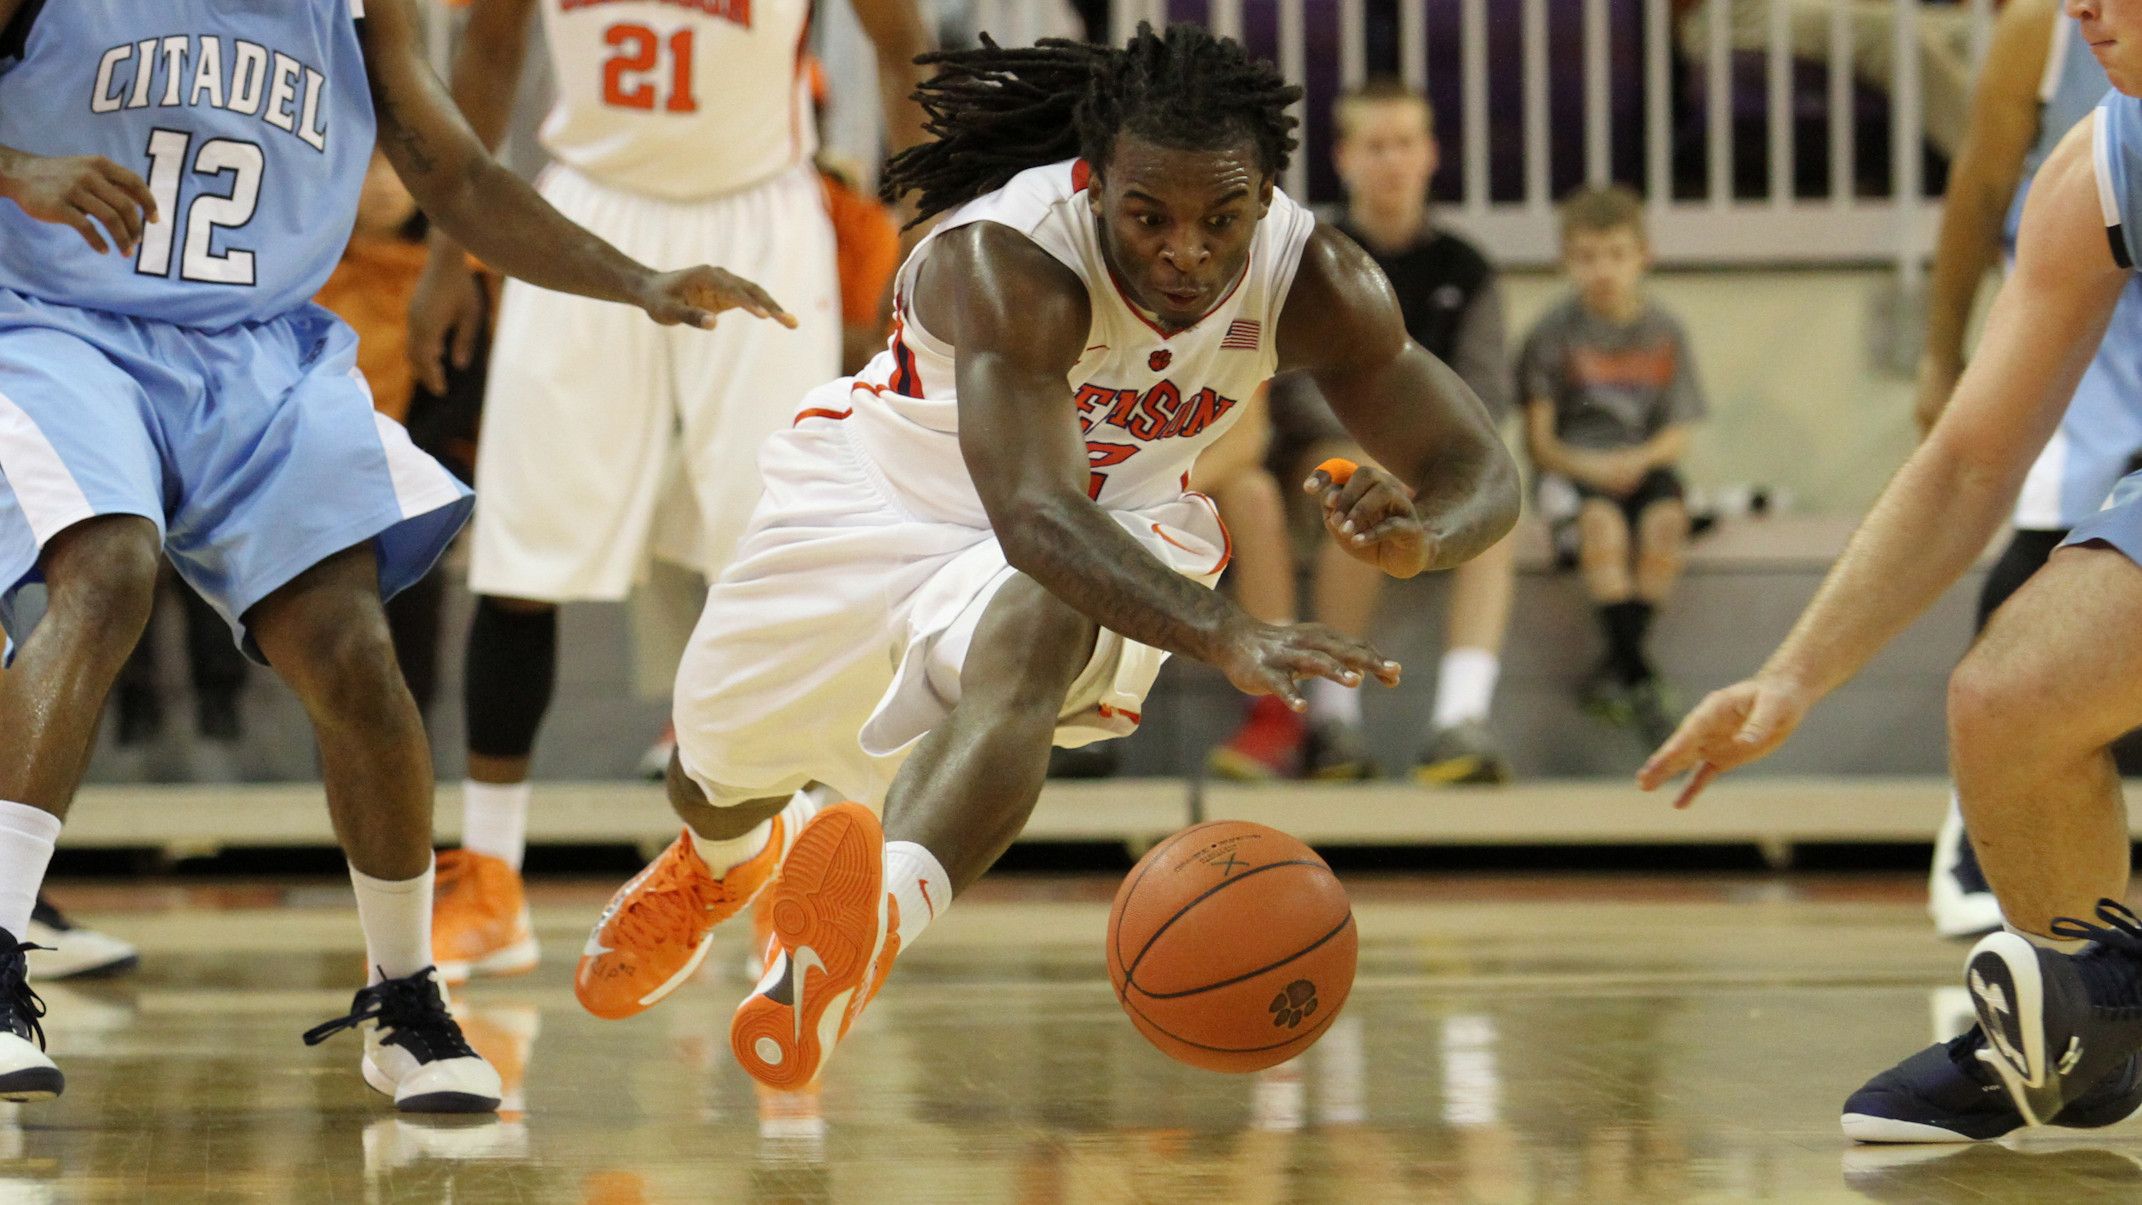 Special Youth Ticket Price Available for Clemson-Florida State Basketball Game Saturday